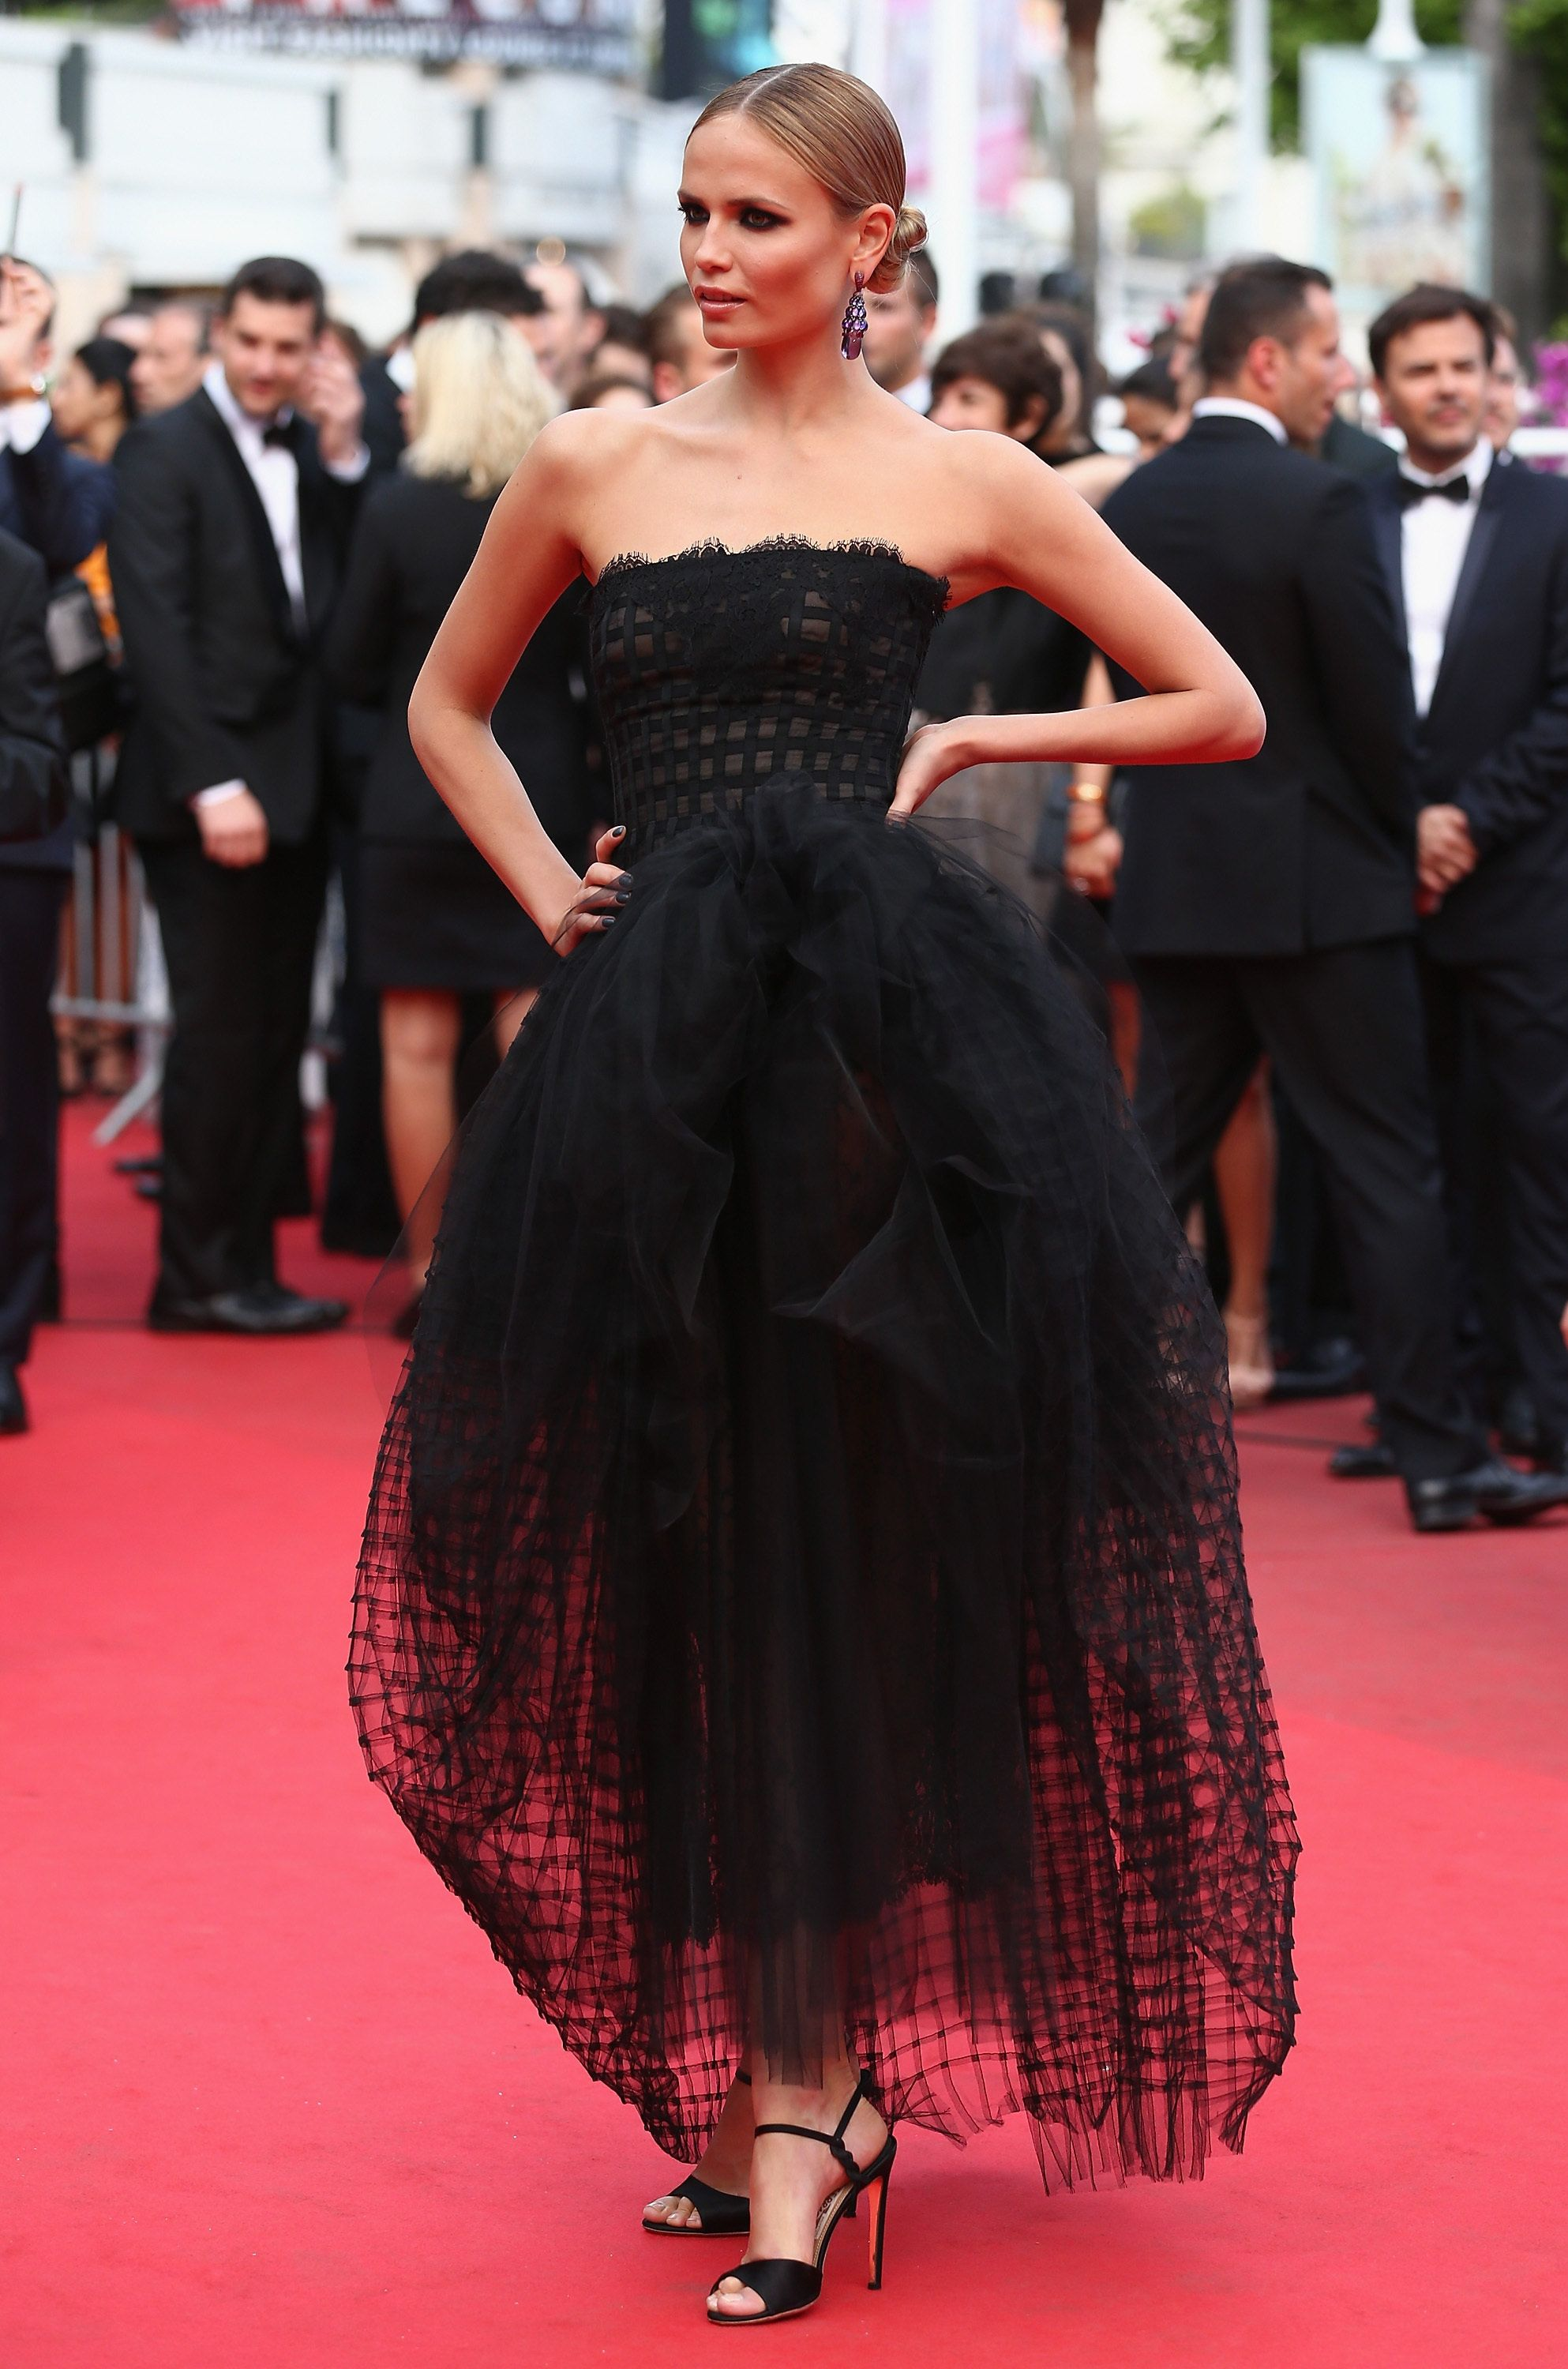 Natasha Poly - 'Saint Laurent' premiere during the 67th Annual Cannes Film Festival in Cannes,France (May 17, 2014)